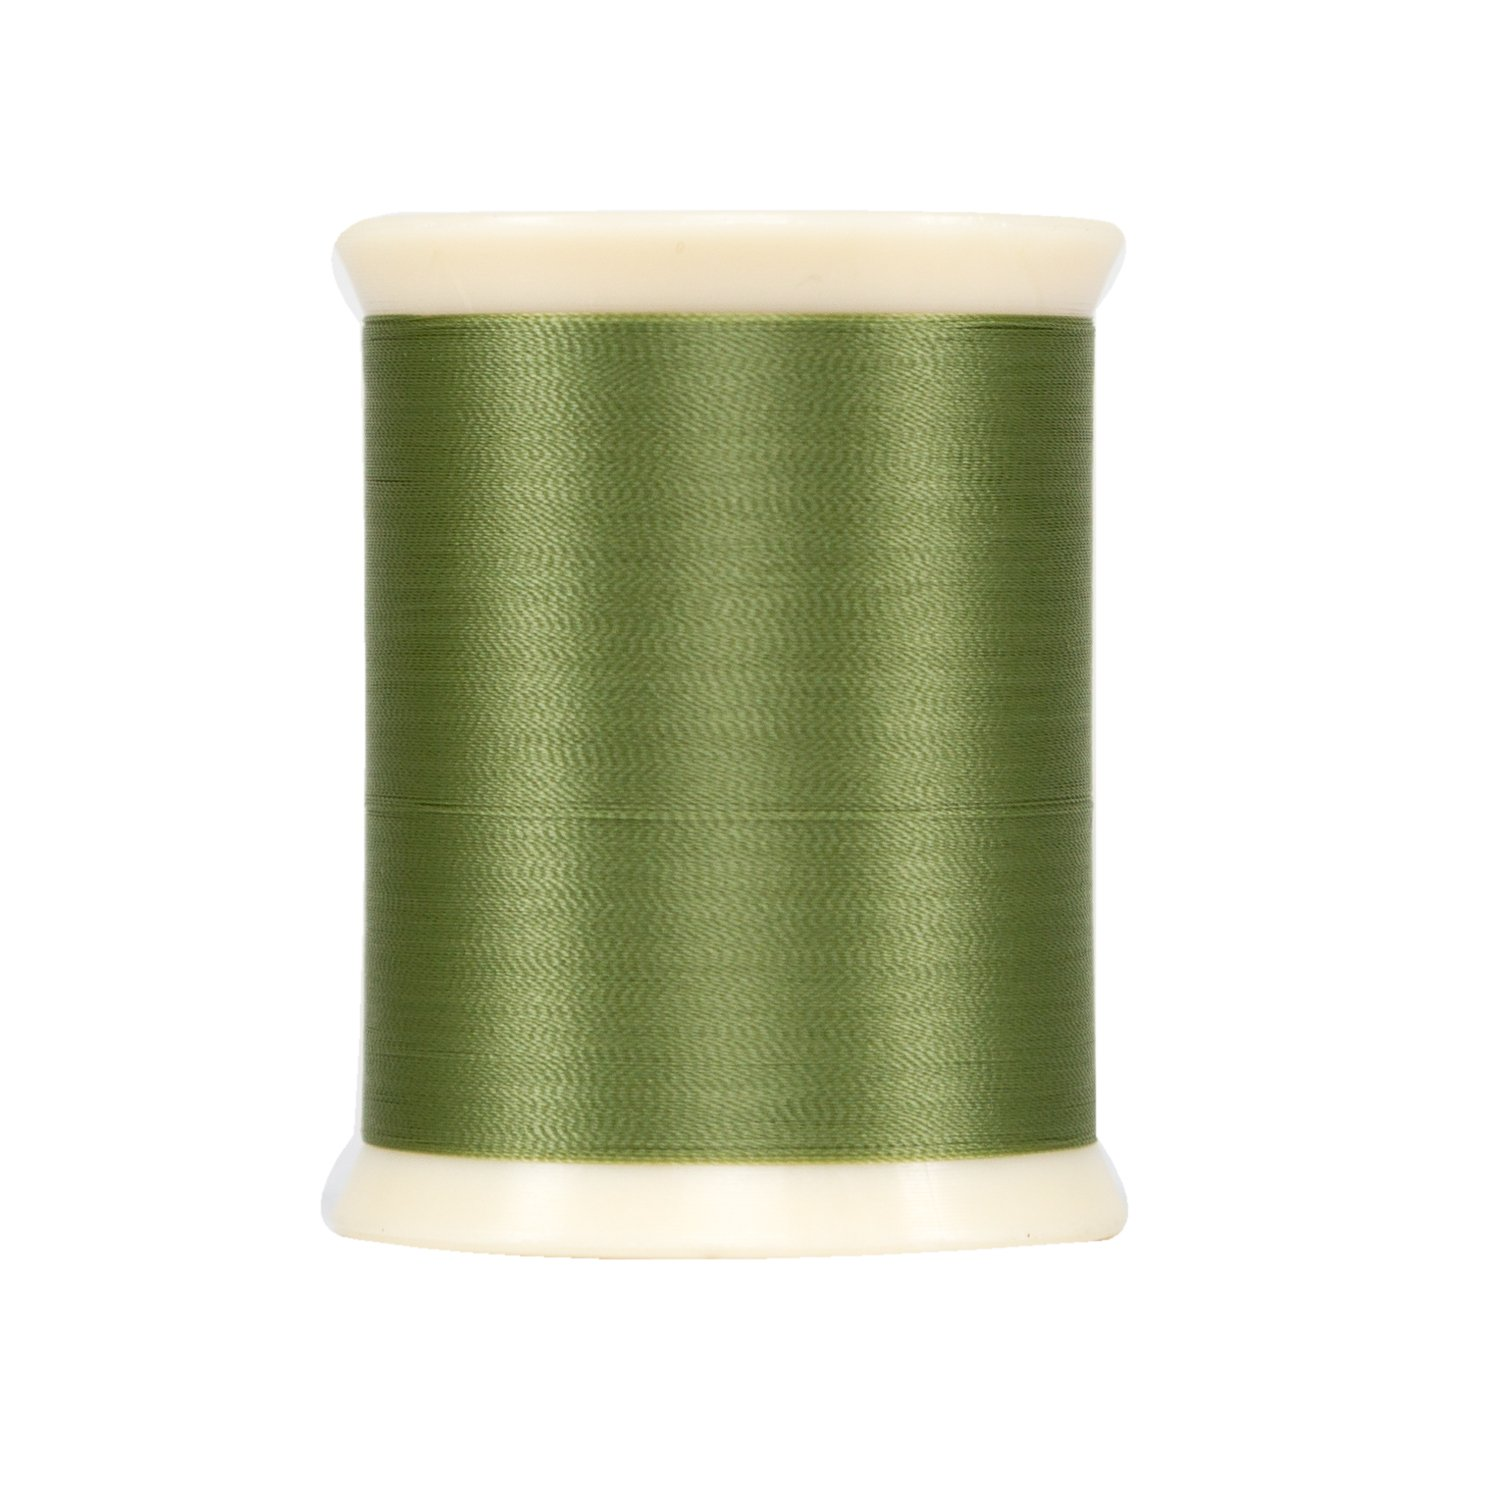 #7025 Sage MicroQuilter 800 yd spool